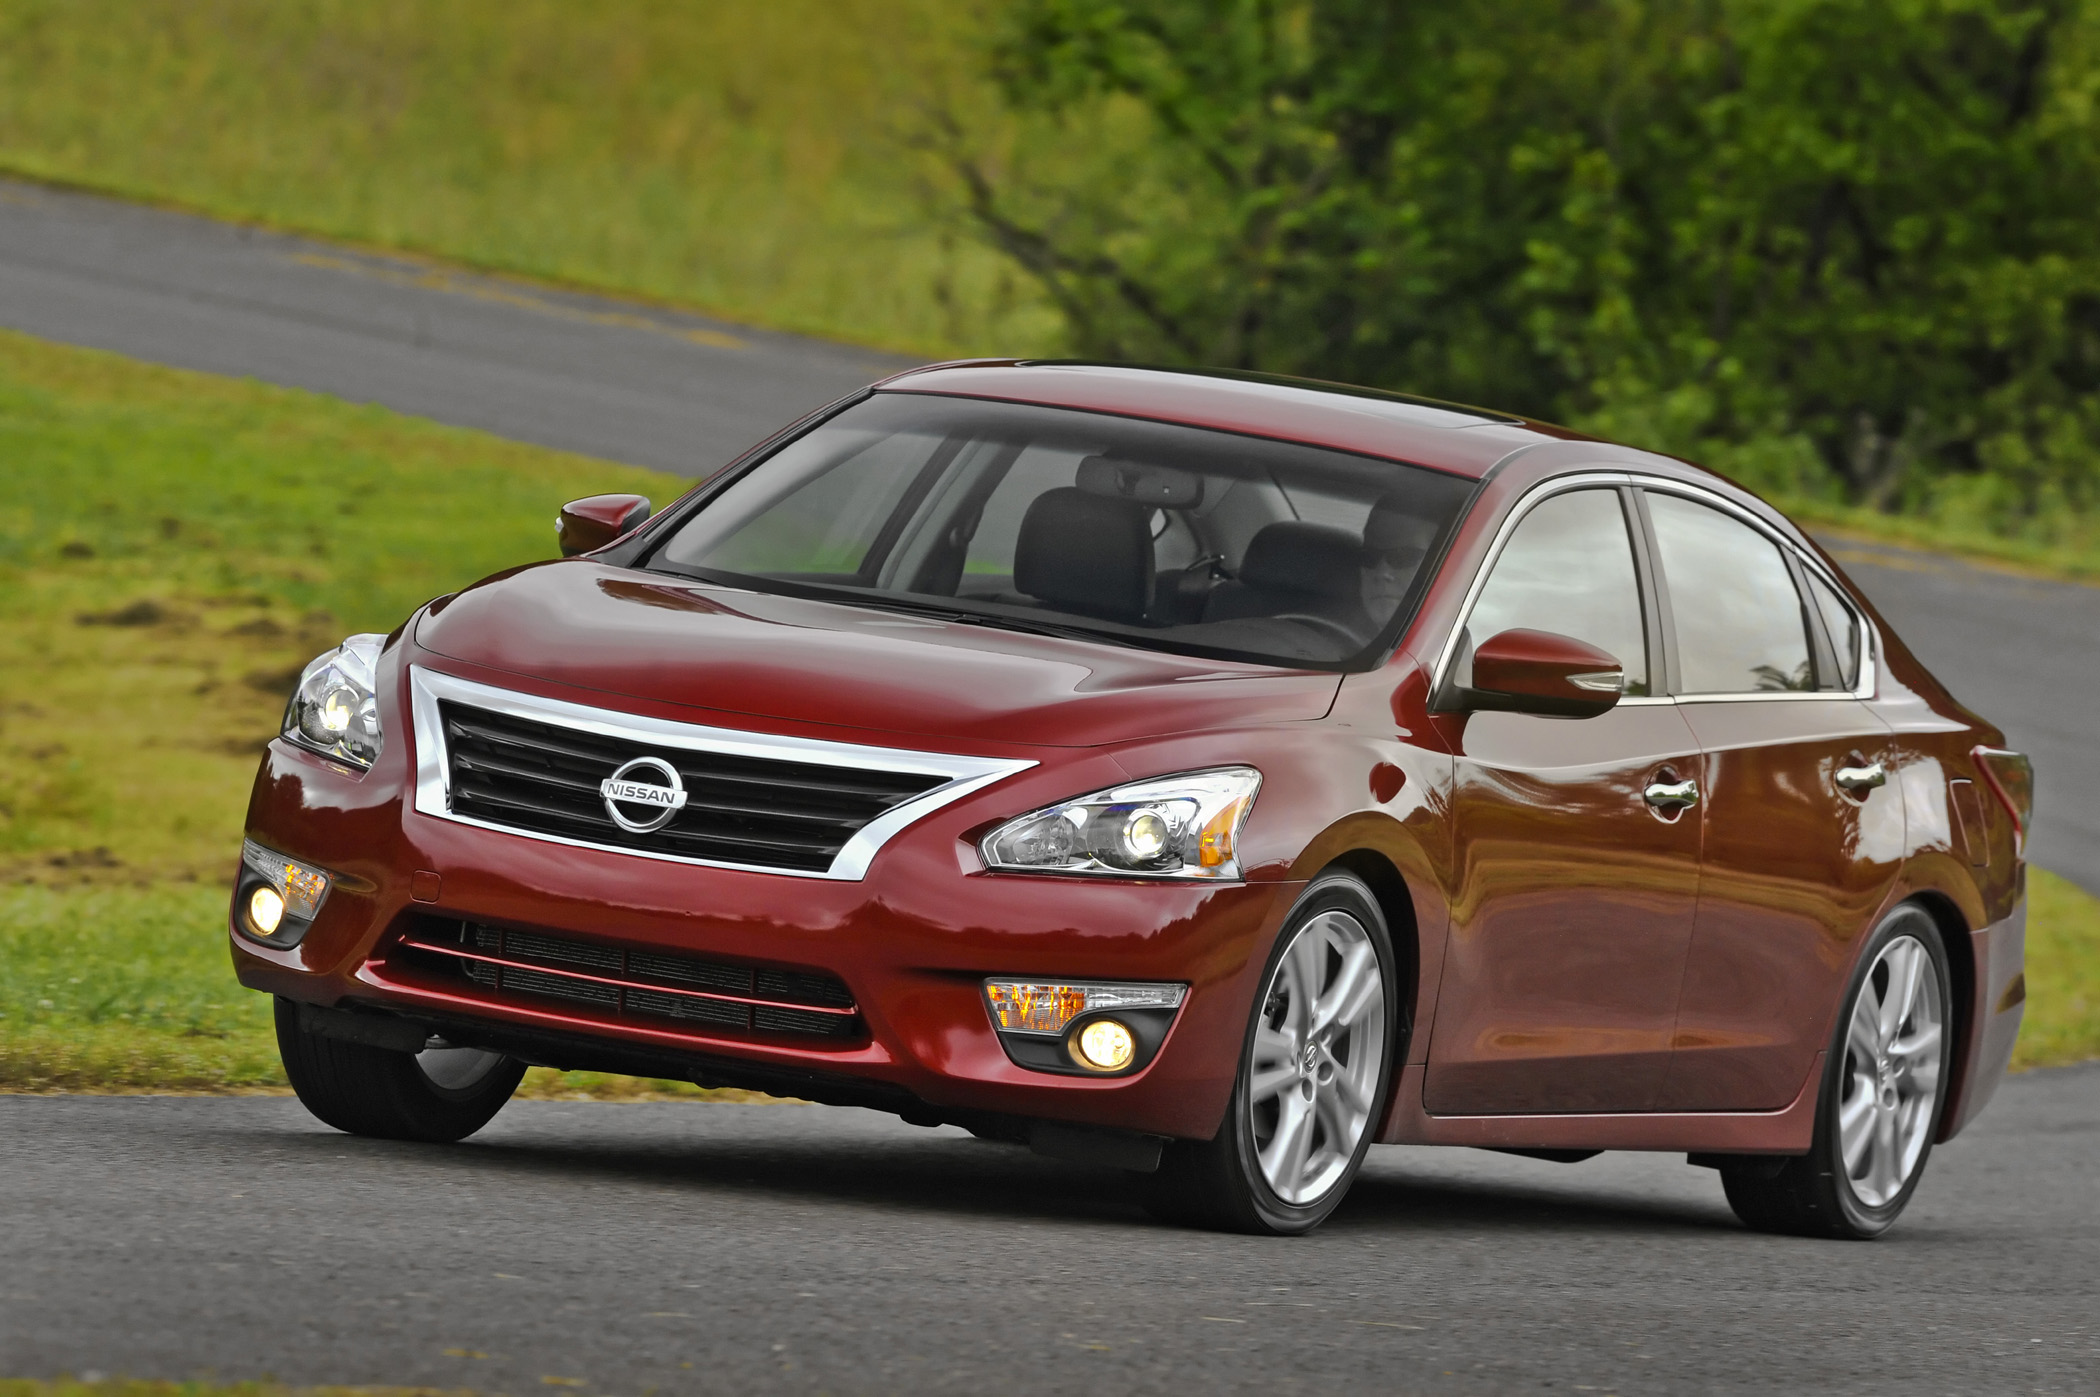 2013 nissan altima all new sedan earns 38 mpg new on wheels groovecar. Black Bedroom Furniture Sets. Home Design Ideas